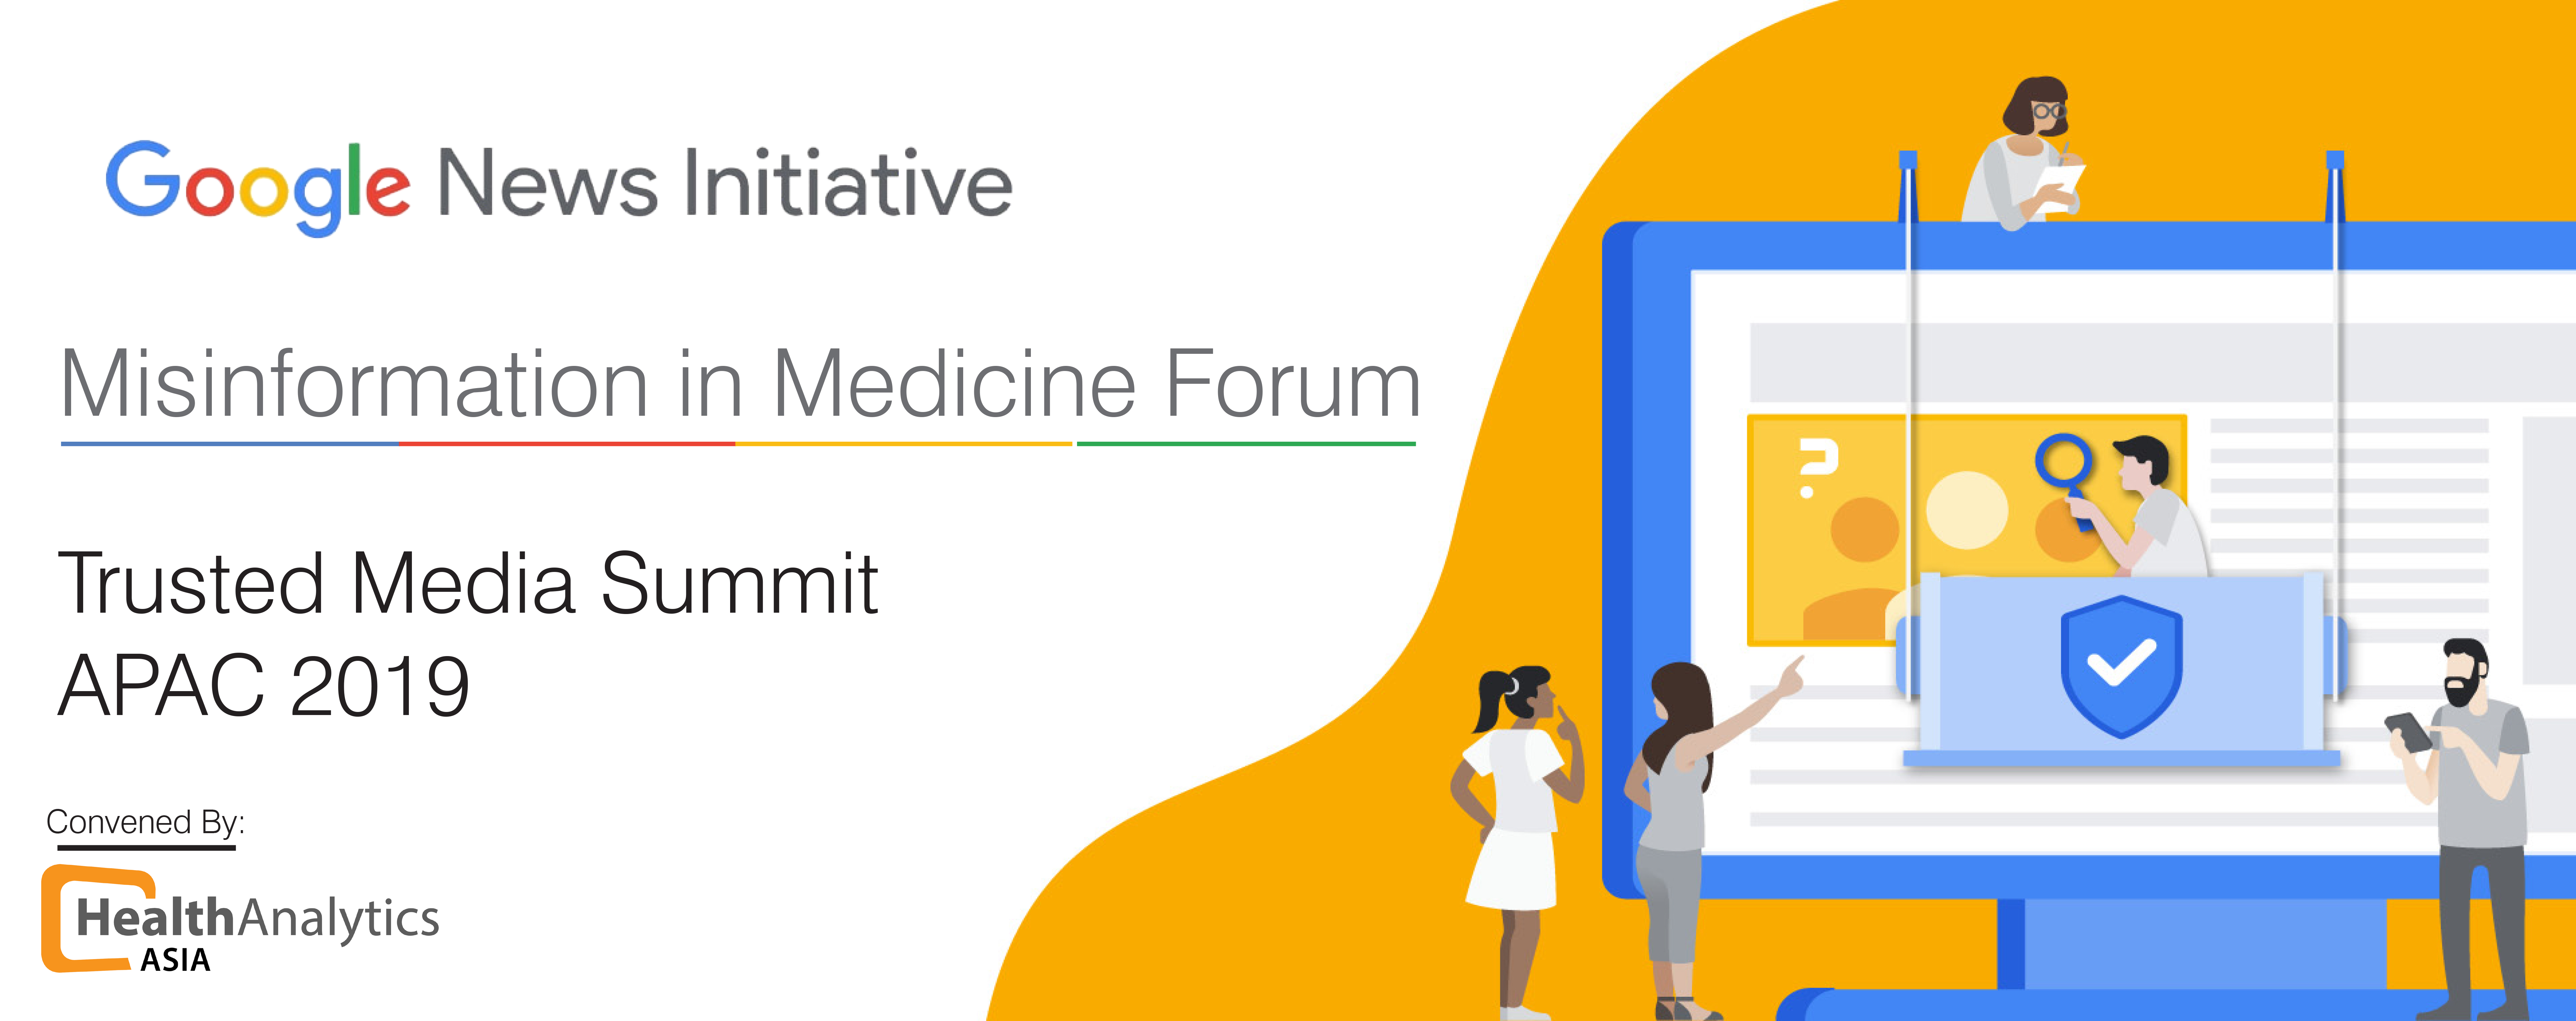 Forum on Misinformation in Medicine